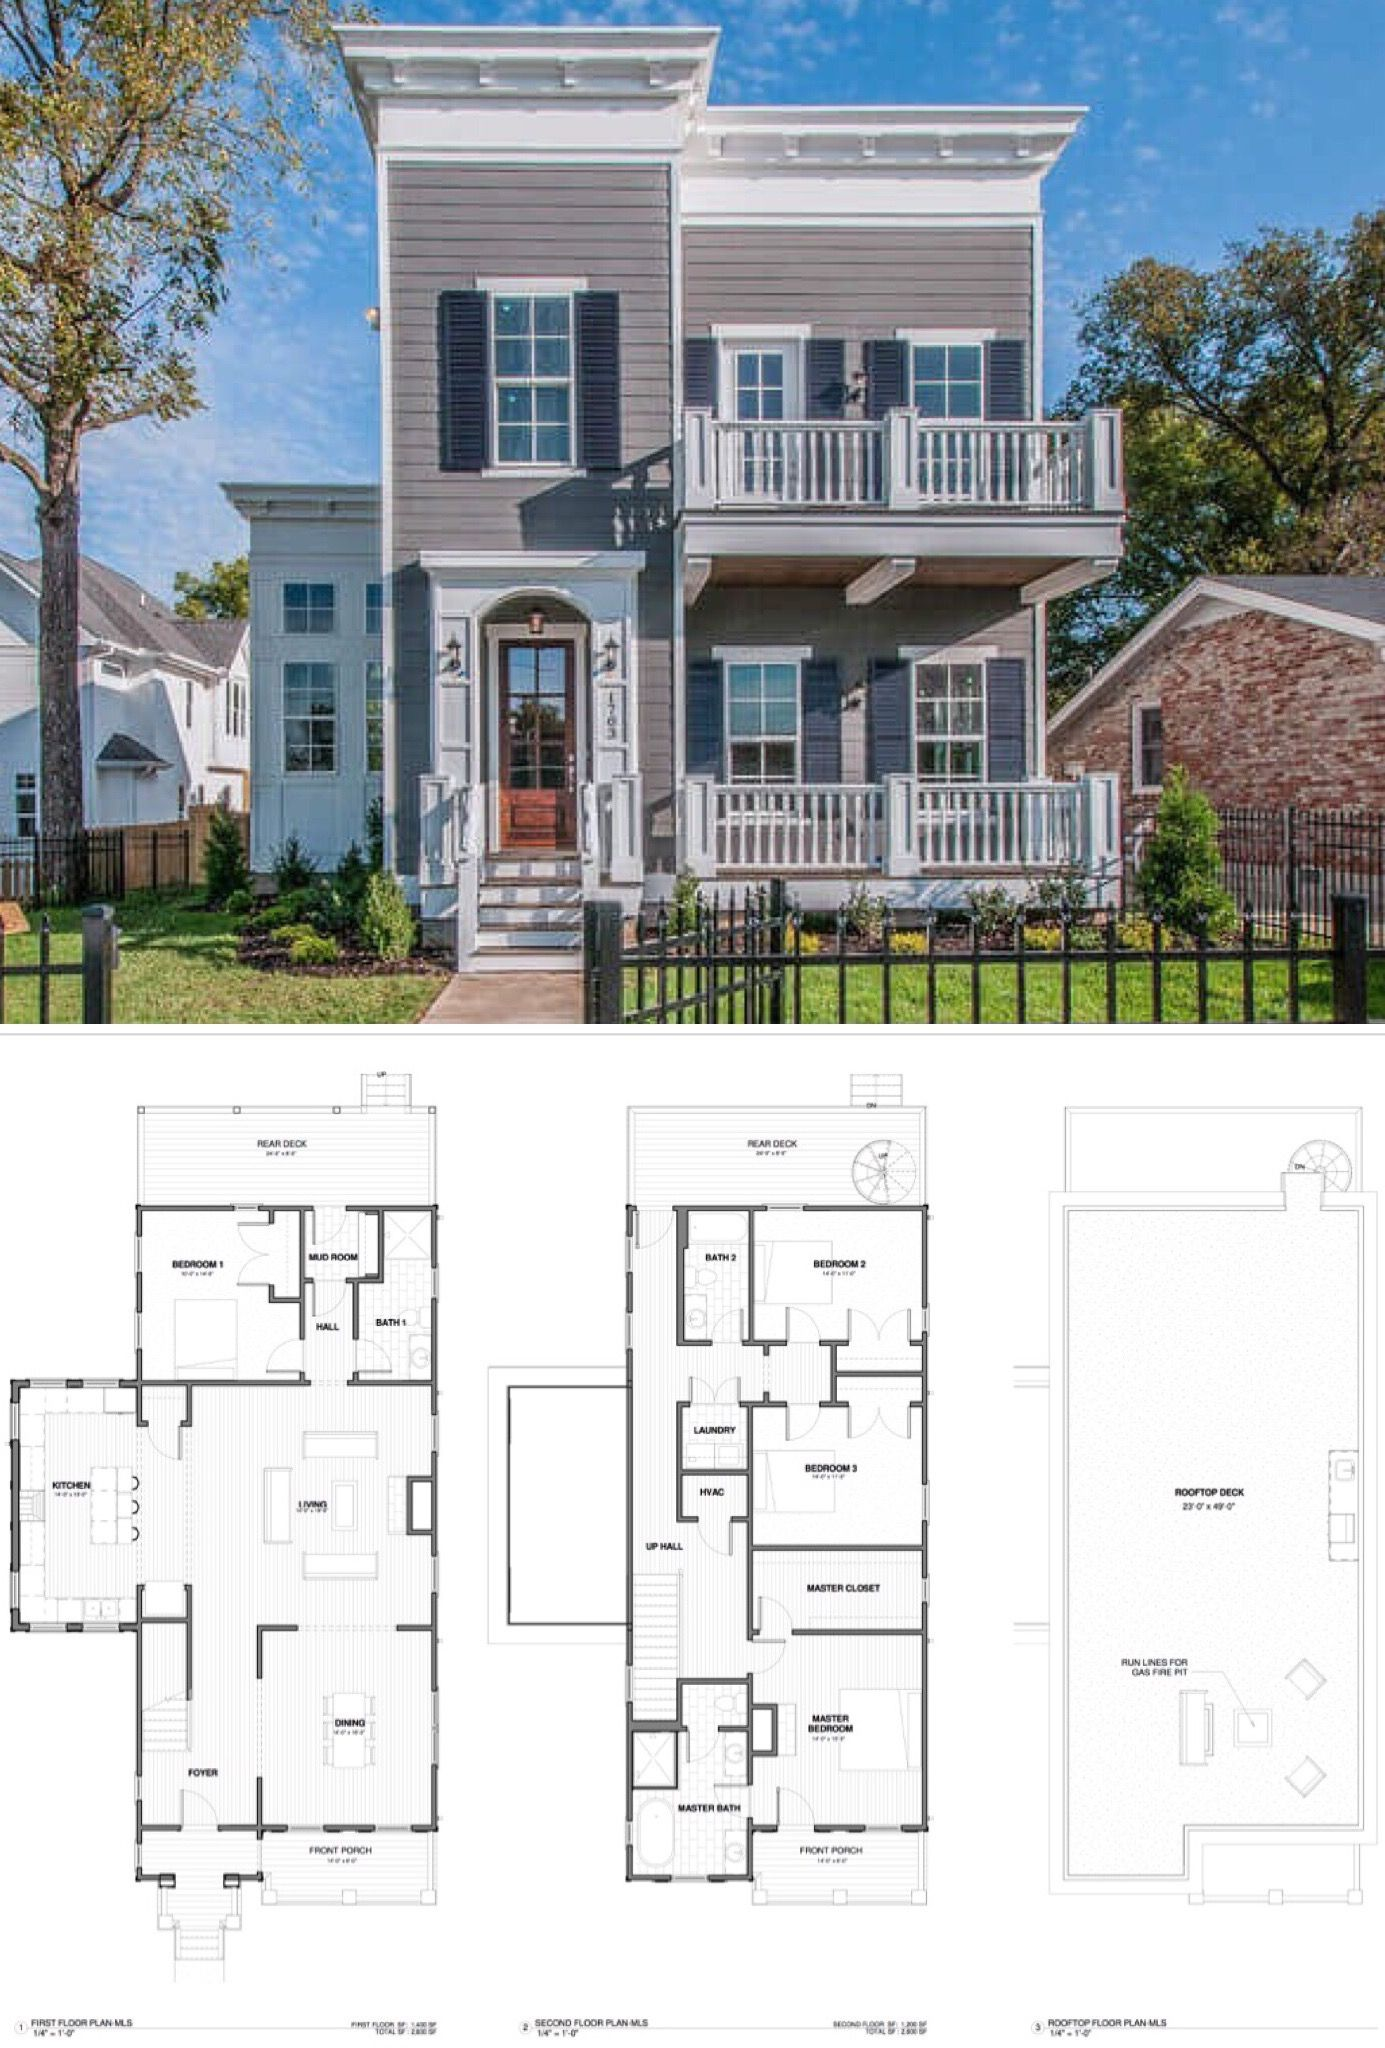 Faith britney plan bathrooms bedrooms area sq ft high end design features massive rooftop deck  perfect place for  fire pit and outdoor also contemporary modern elevation of welcome home in rh pinterest